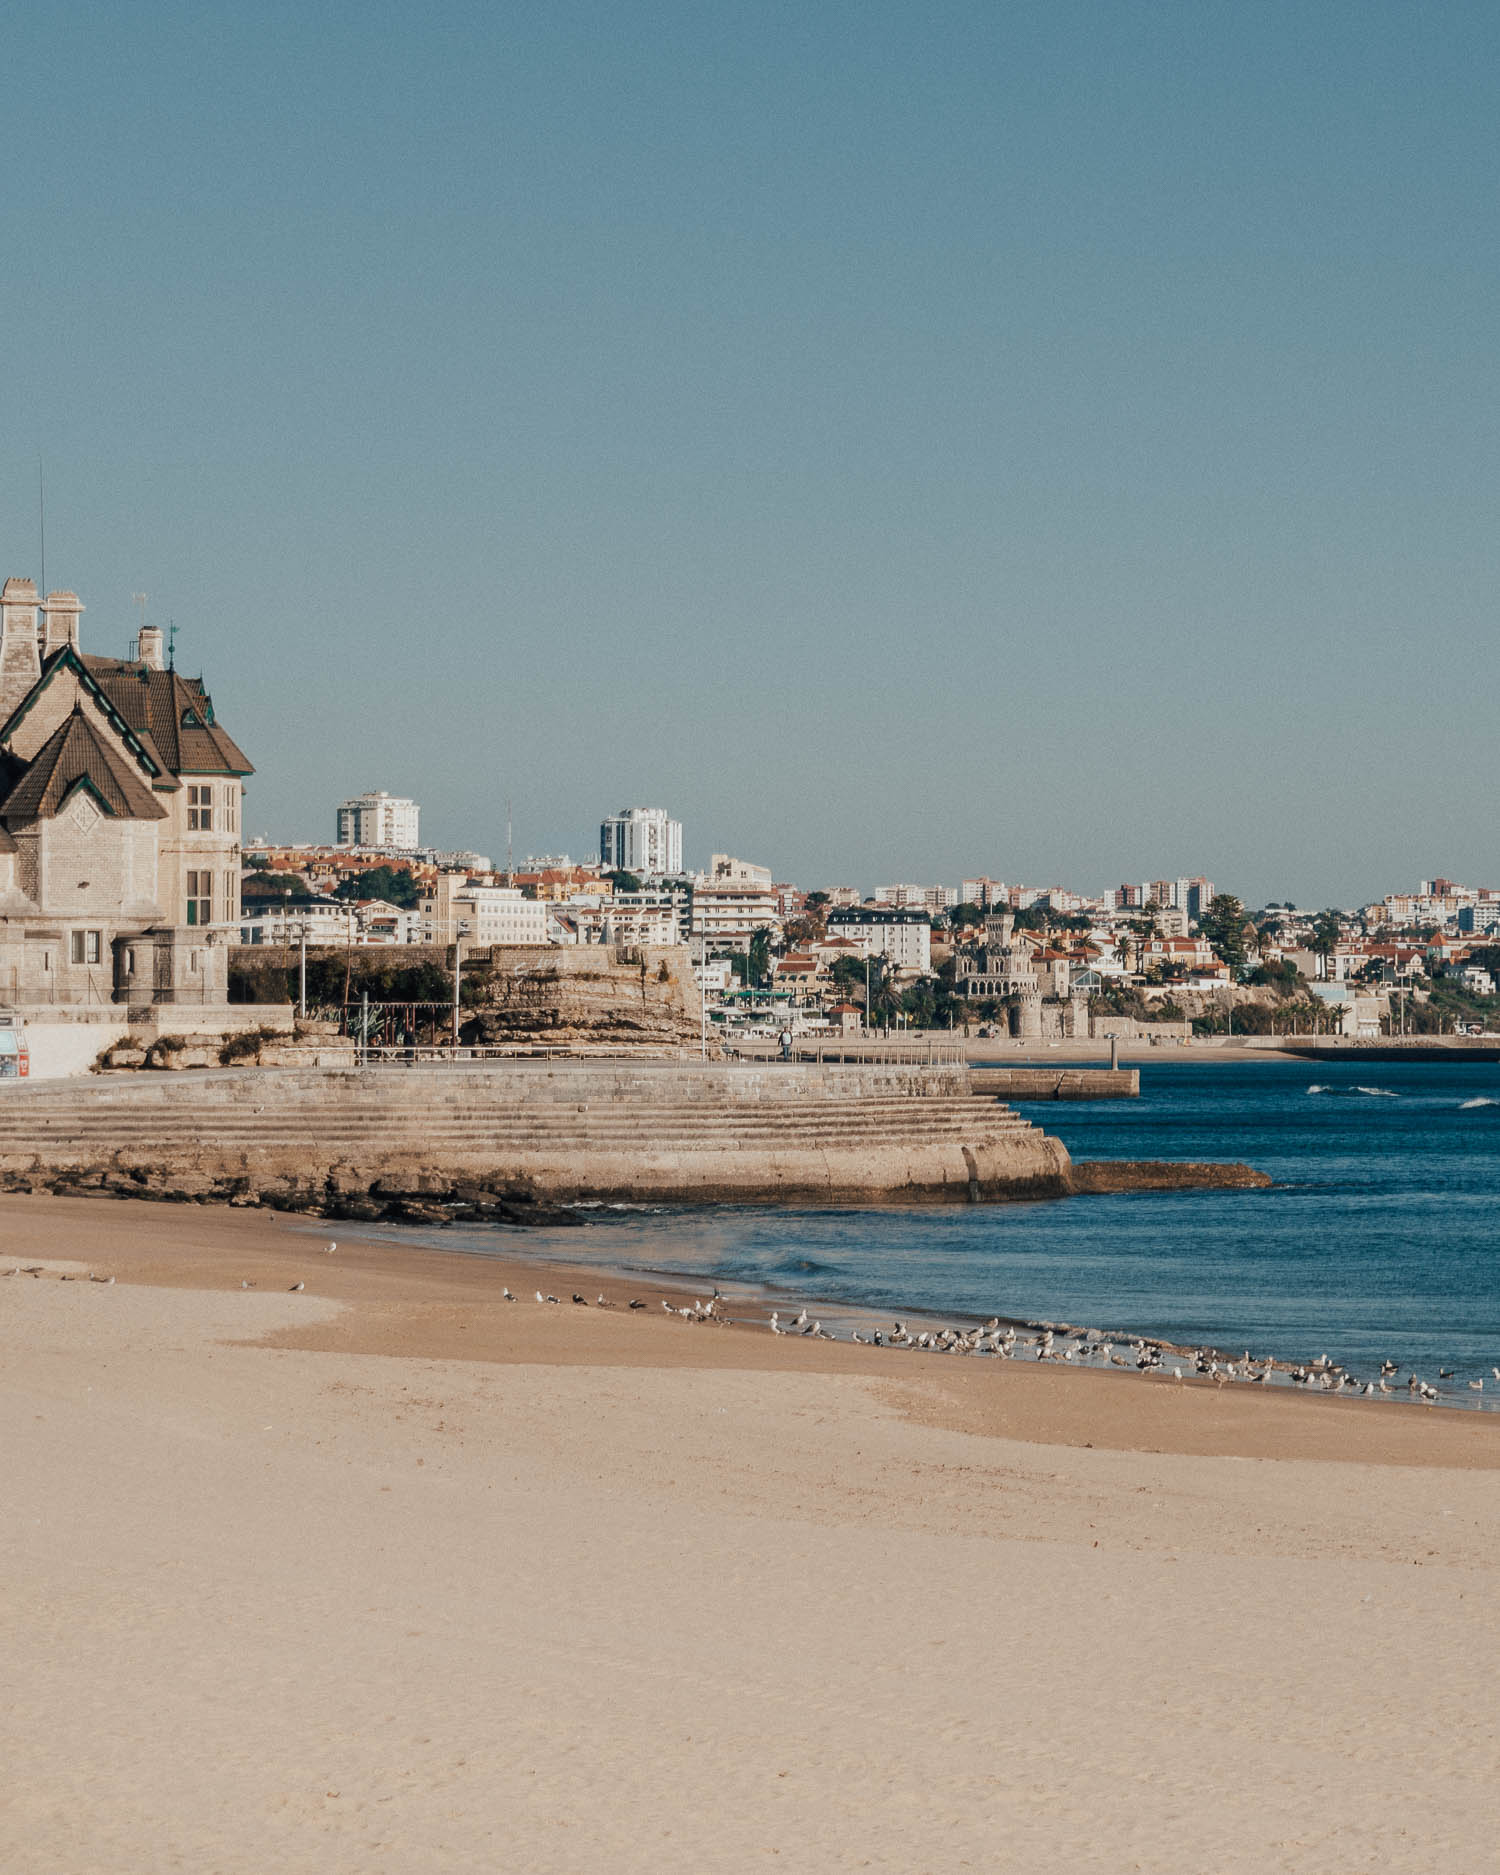 Golden beach in Cascais